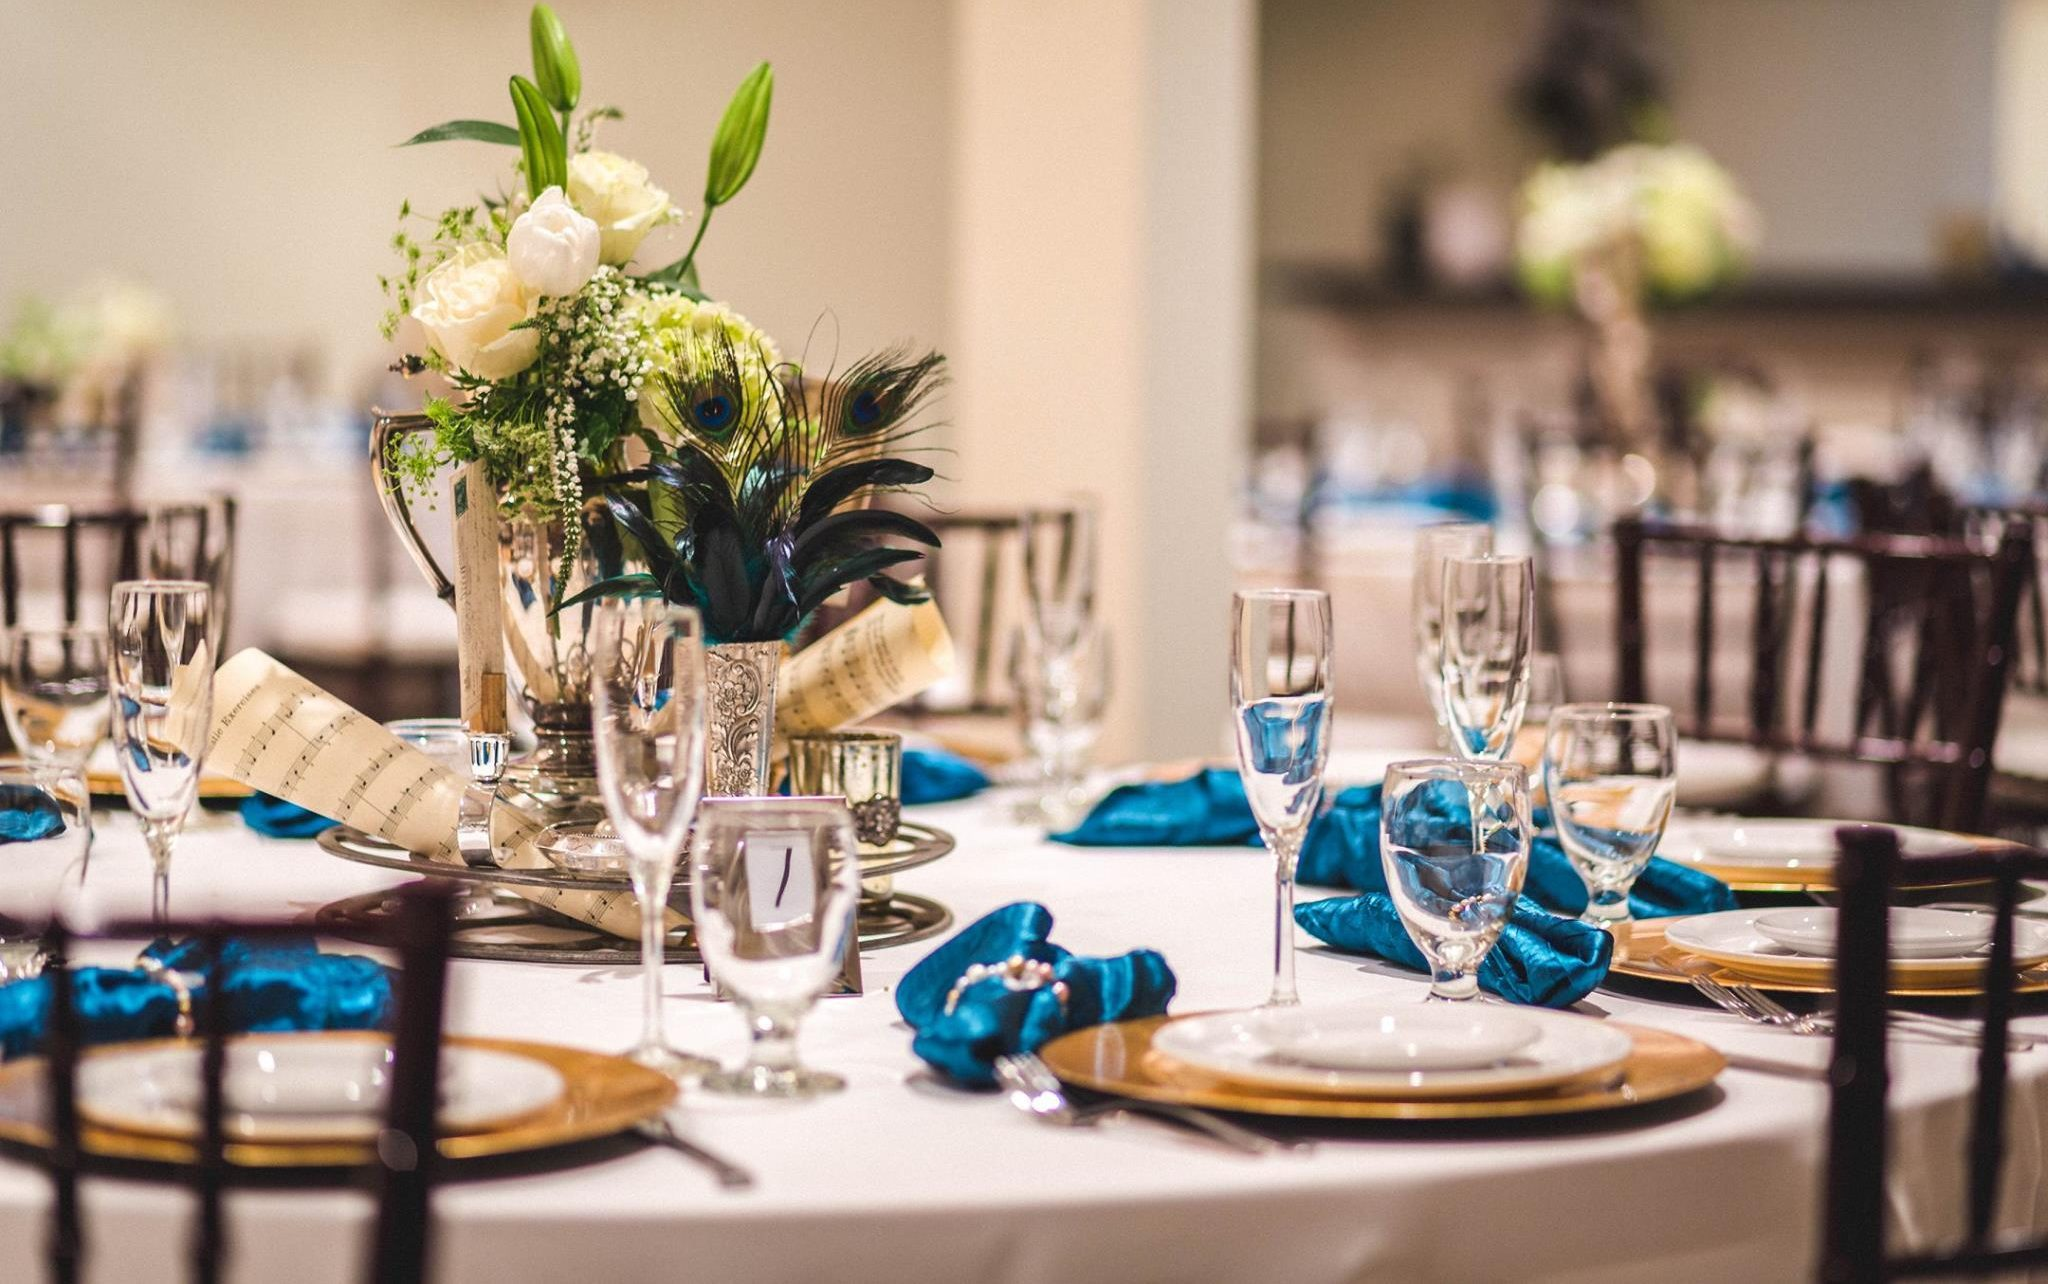 A table setting for a wedding, featuring a white tablecloth and blue napkins.